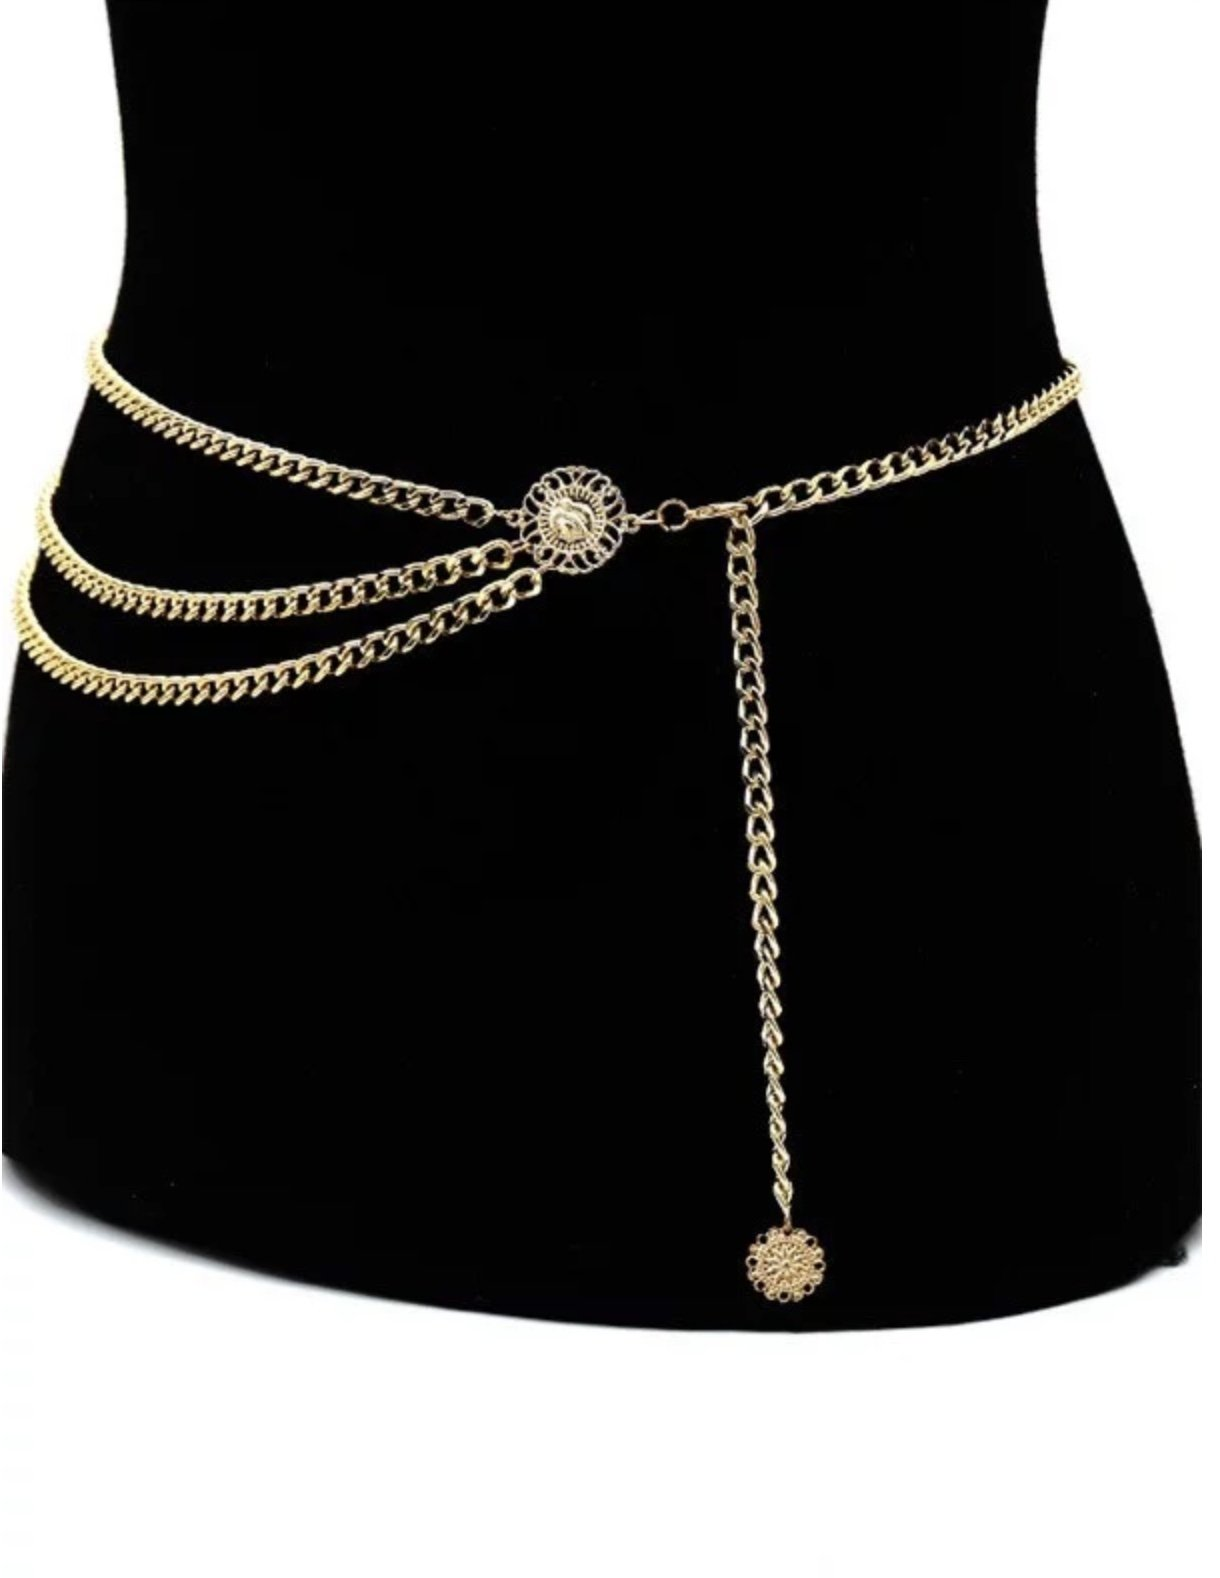 Kira Gold Triple Layer Chain Belt